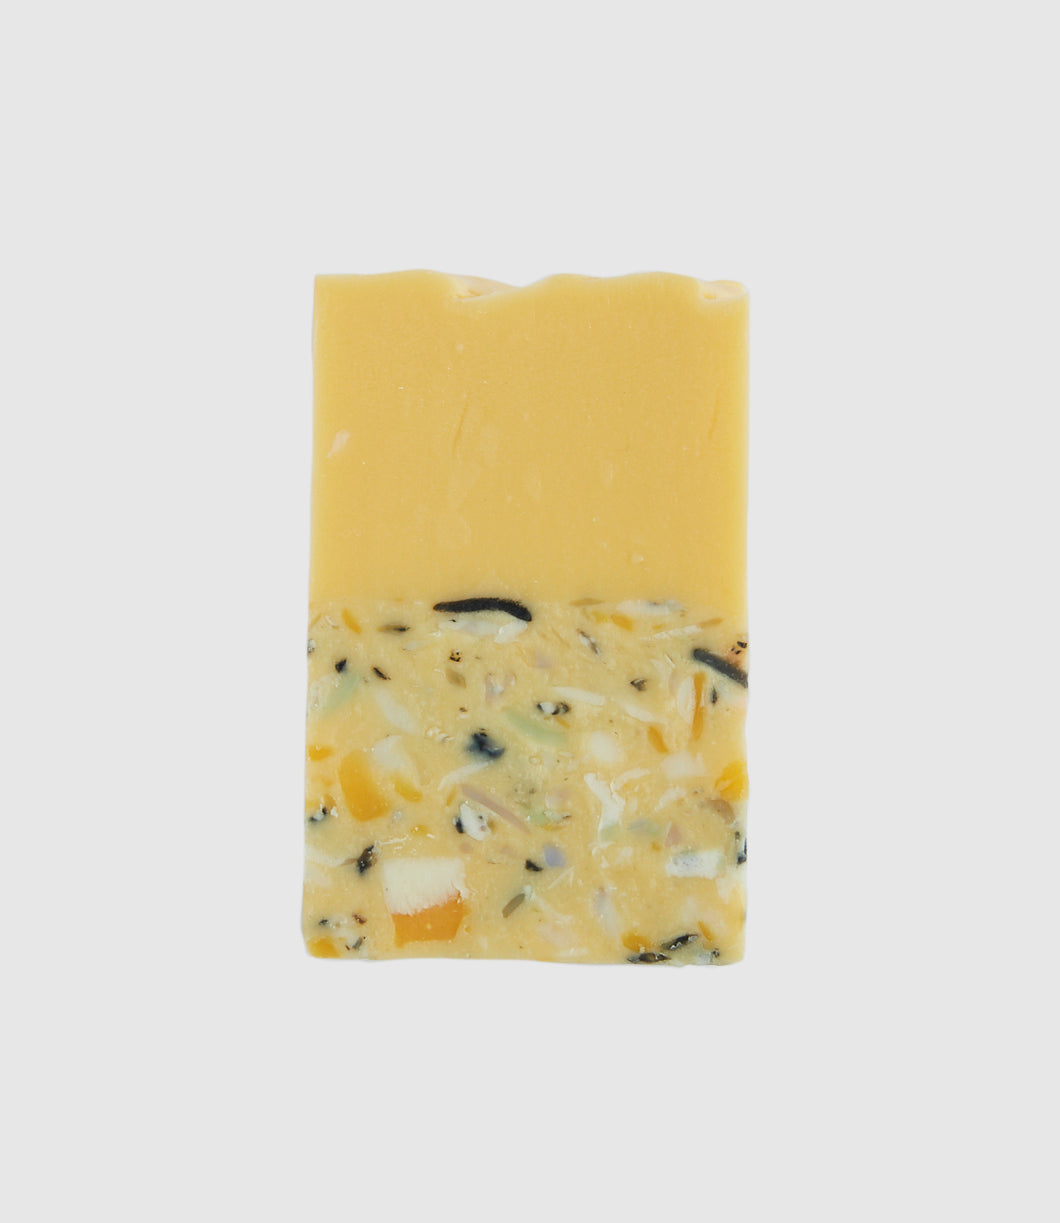 Bade Anstalten Soap - Morning Song 150g